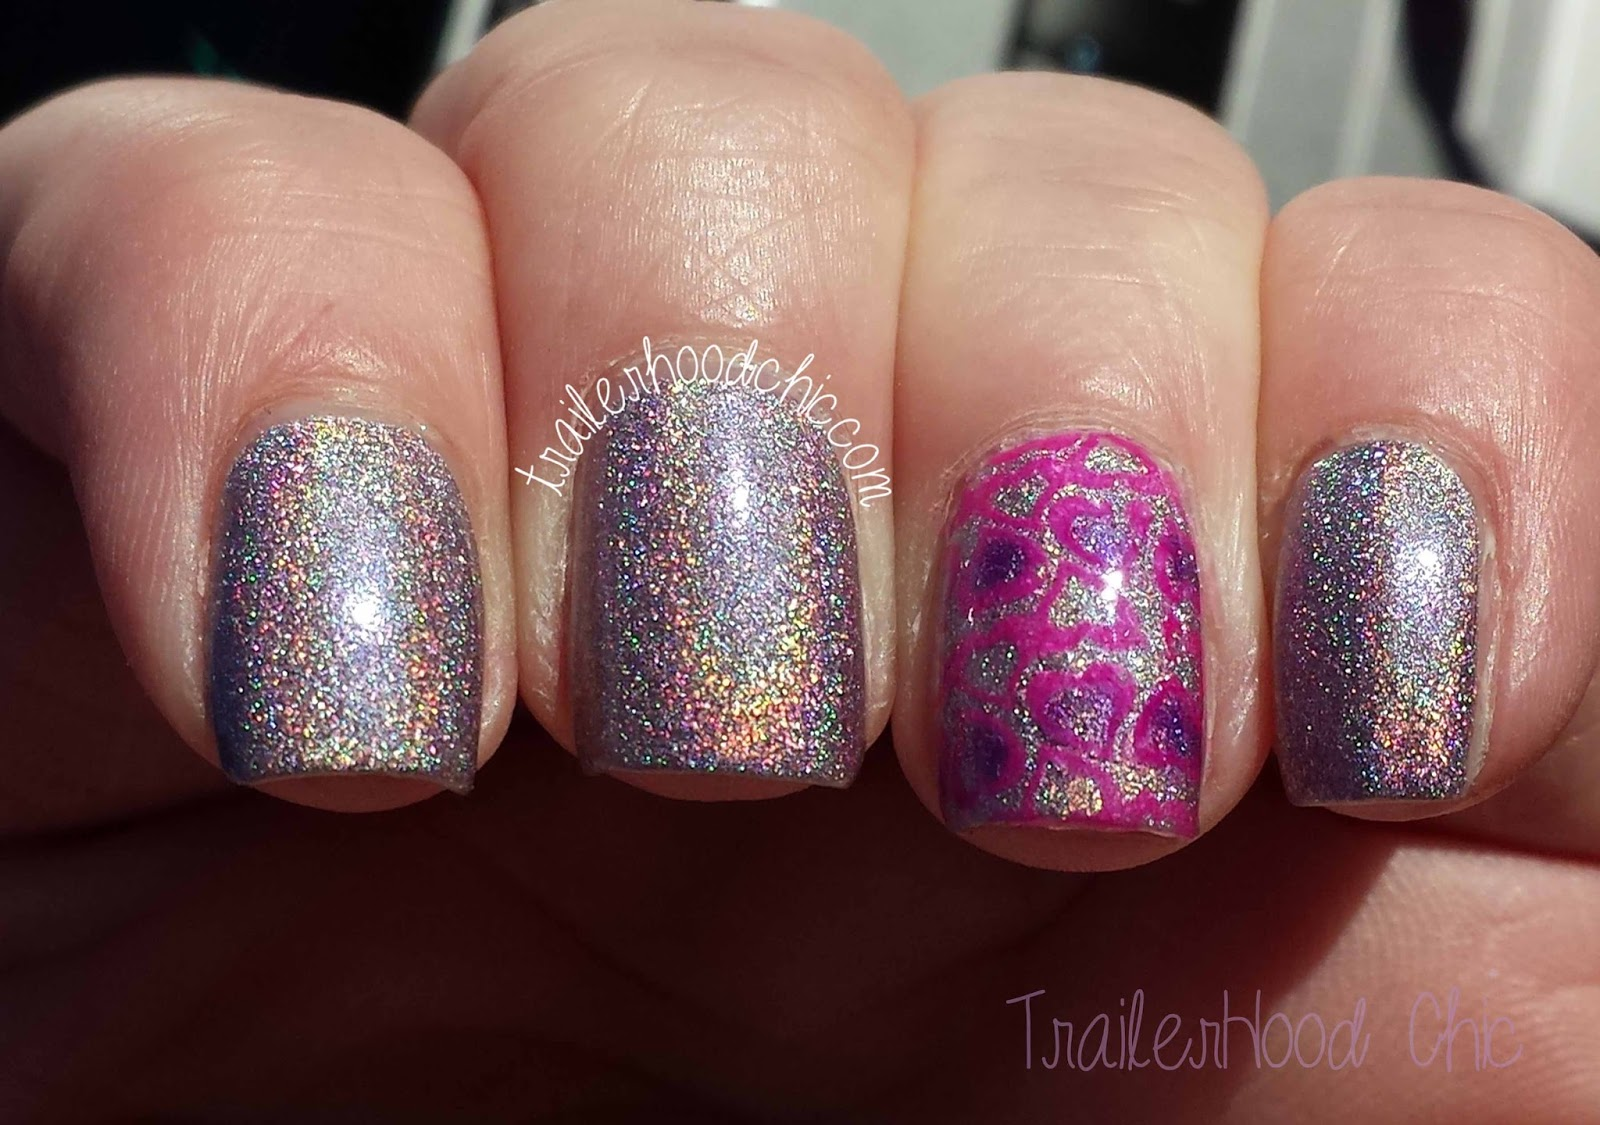 l'oreal masked affair leadlight stamp hearts sally hansen water melon verity deep violet bundle monster stamping polish